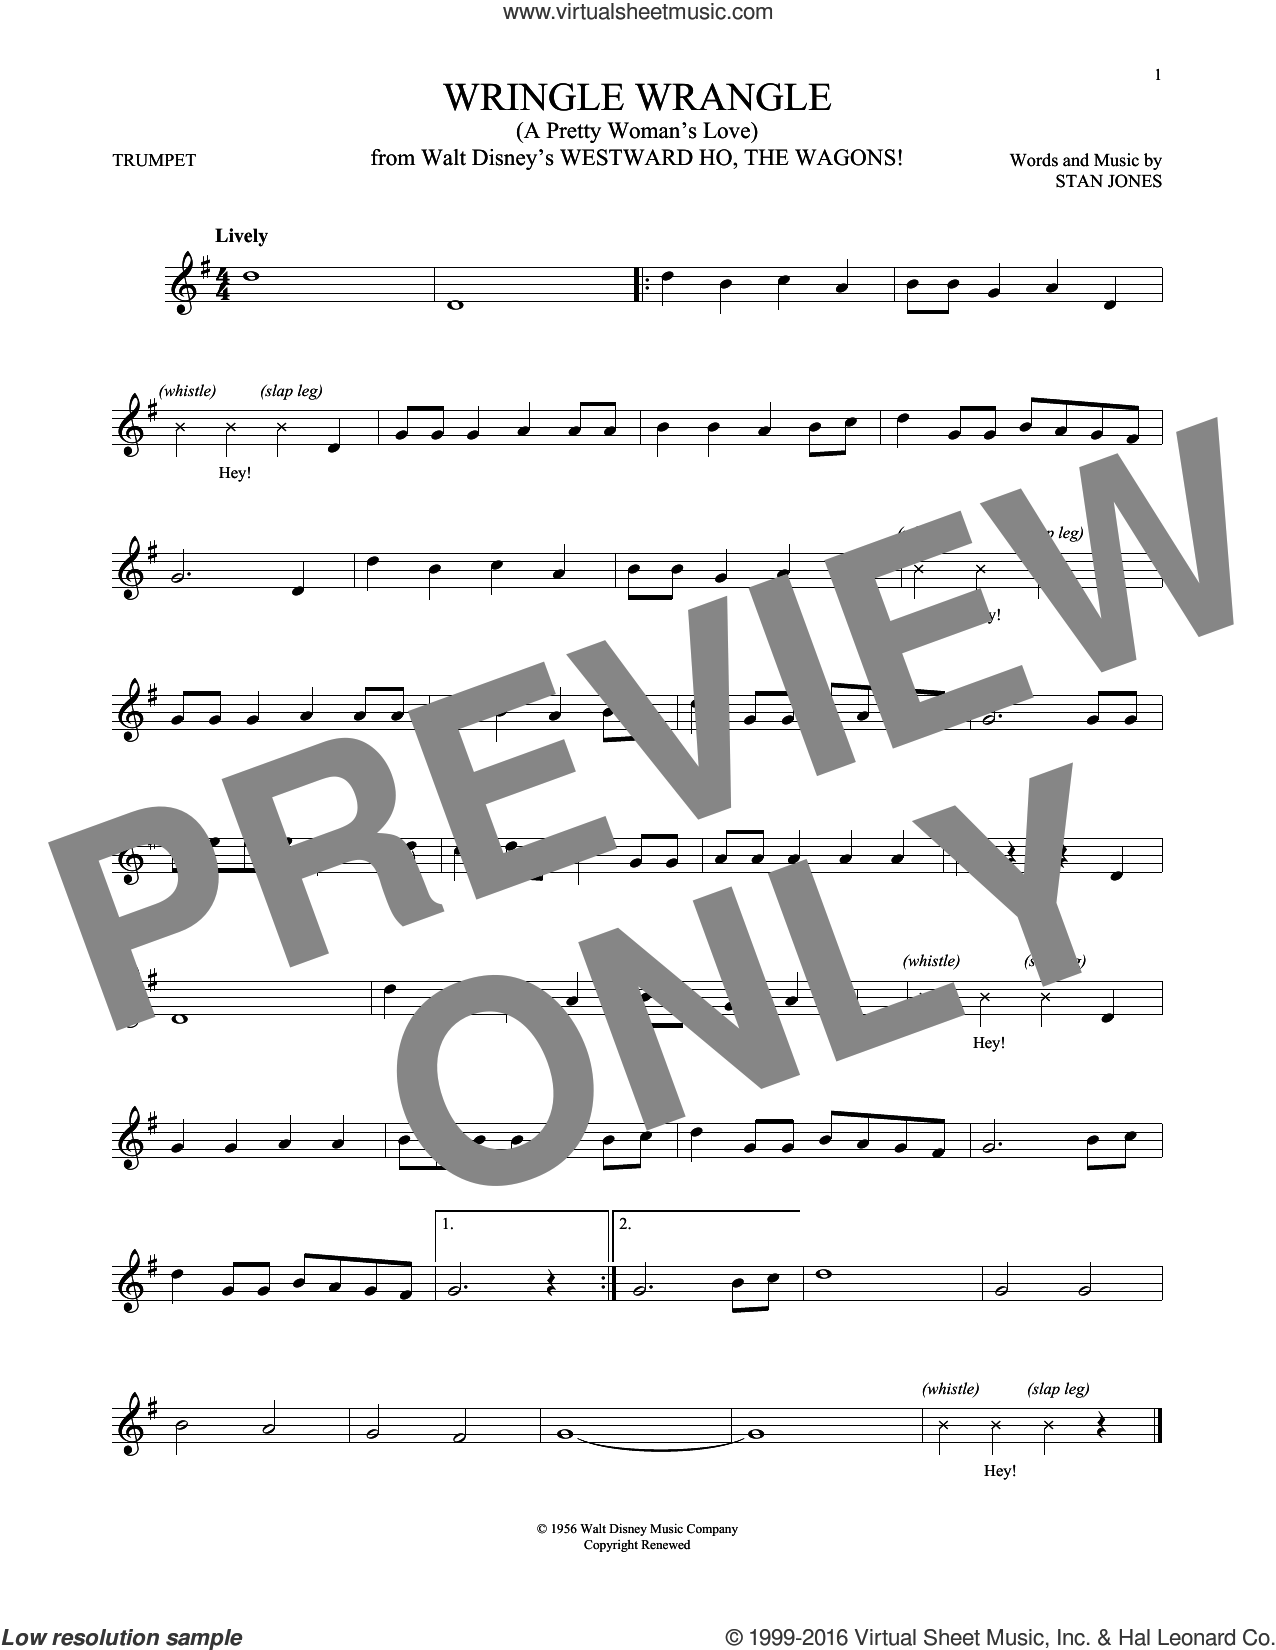 Wringle Wrangle (A Pretty Woman's Love) sheet music for trumpet solo by Stan Jones, intermediate skill level